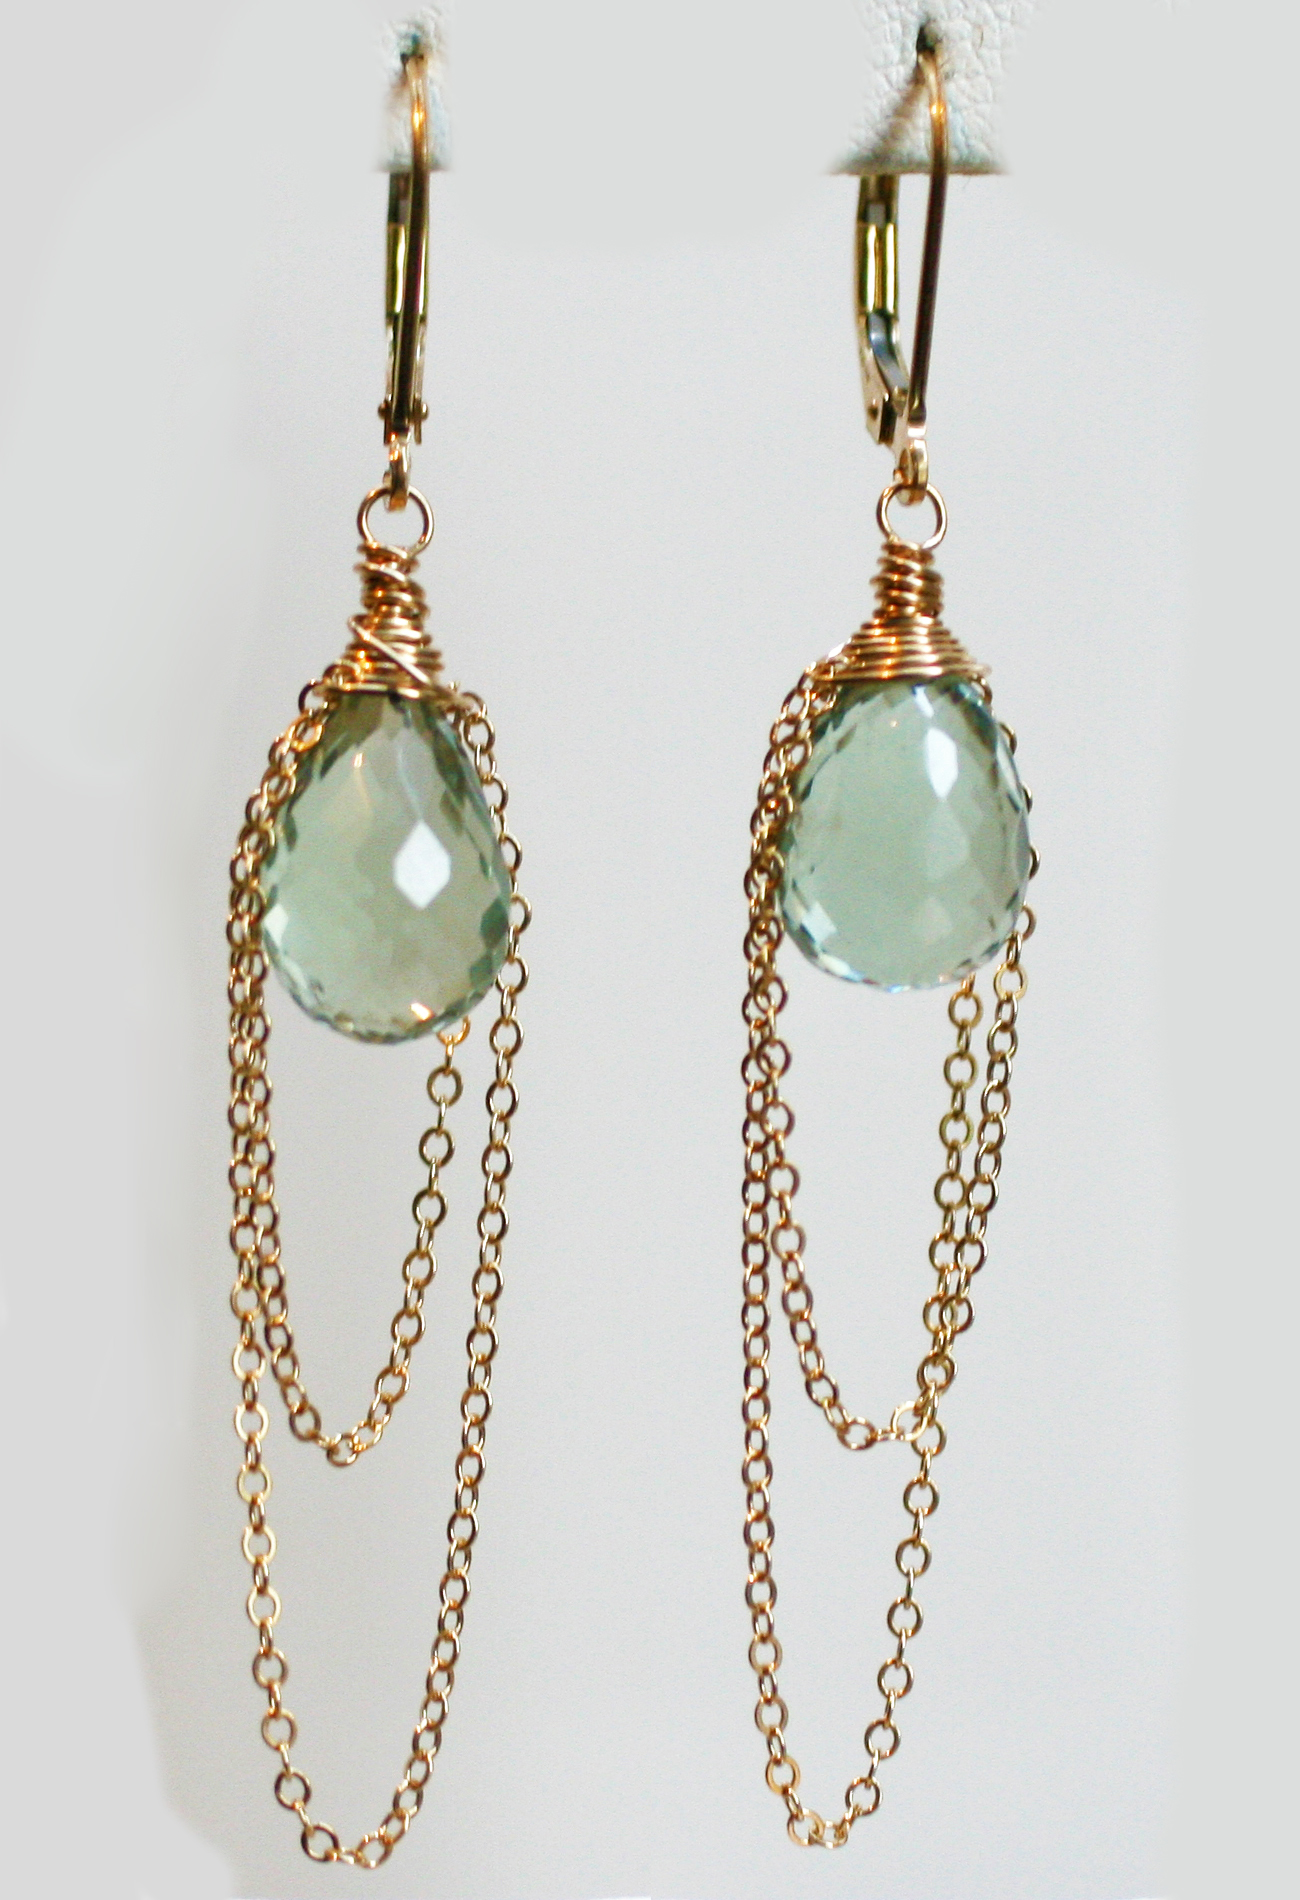 lucky earrings 2